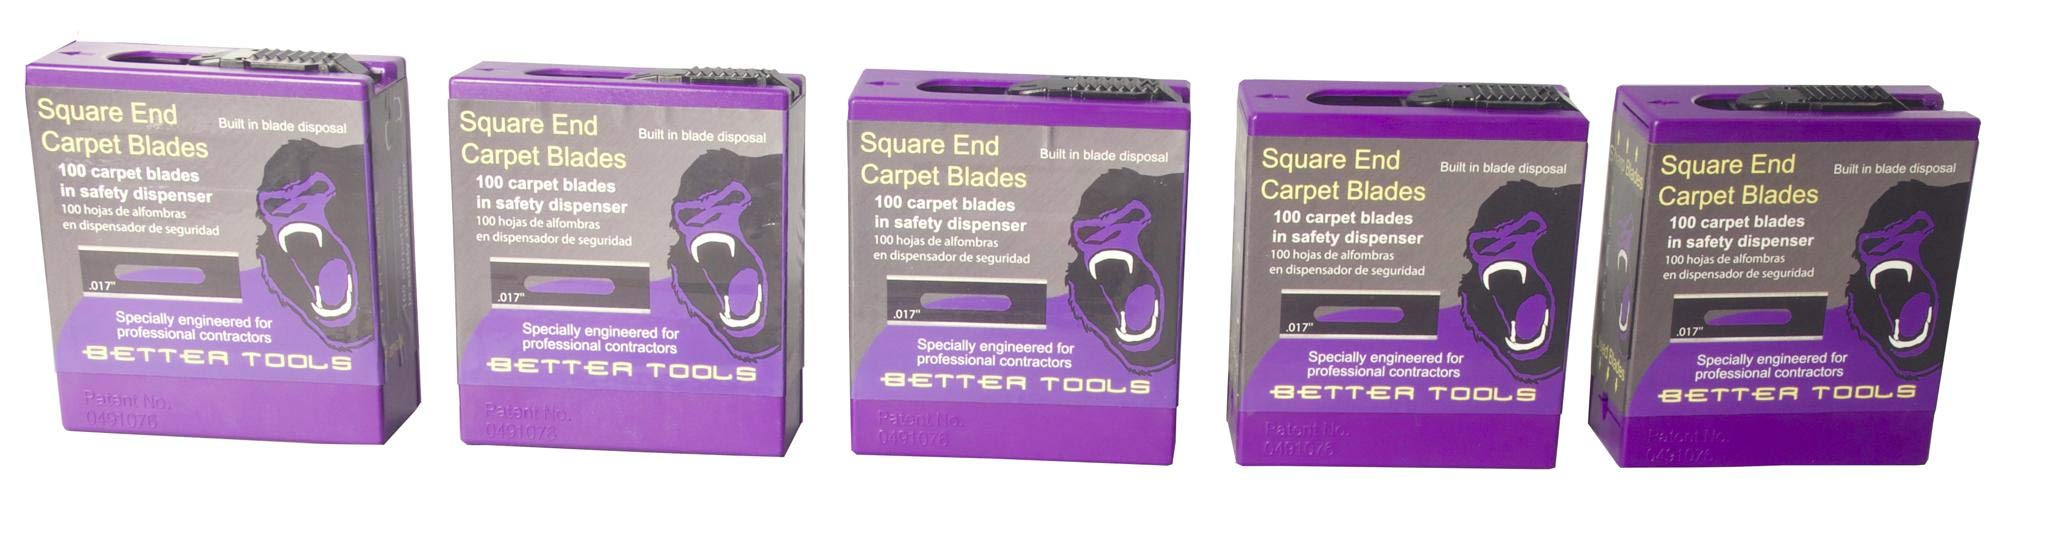 Carpet Blades - Square ends 100 blades dispensers Better Tools 20201N (5) by Better Tools